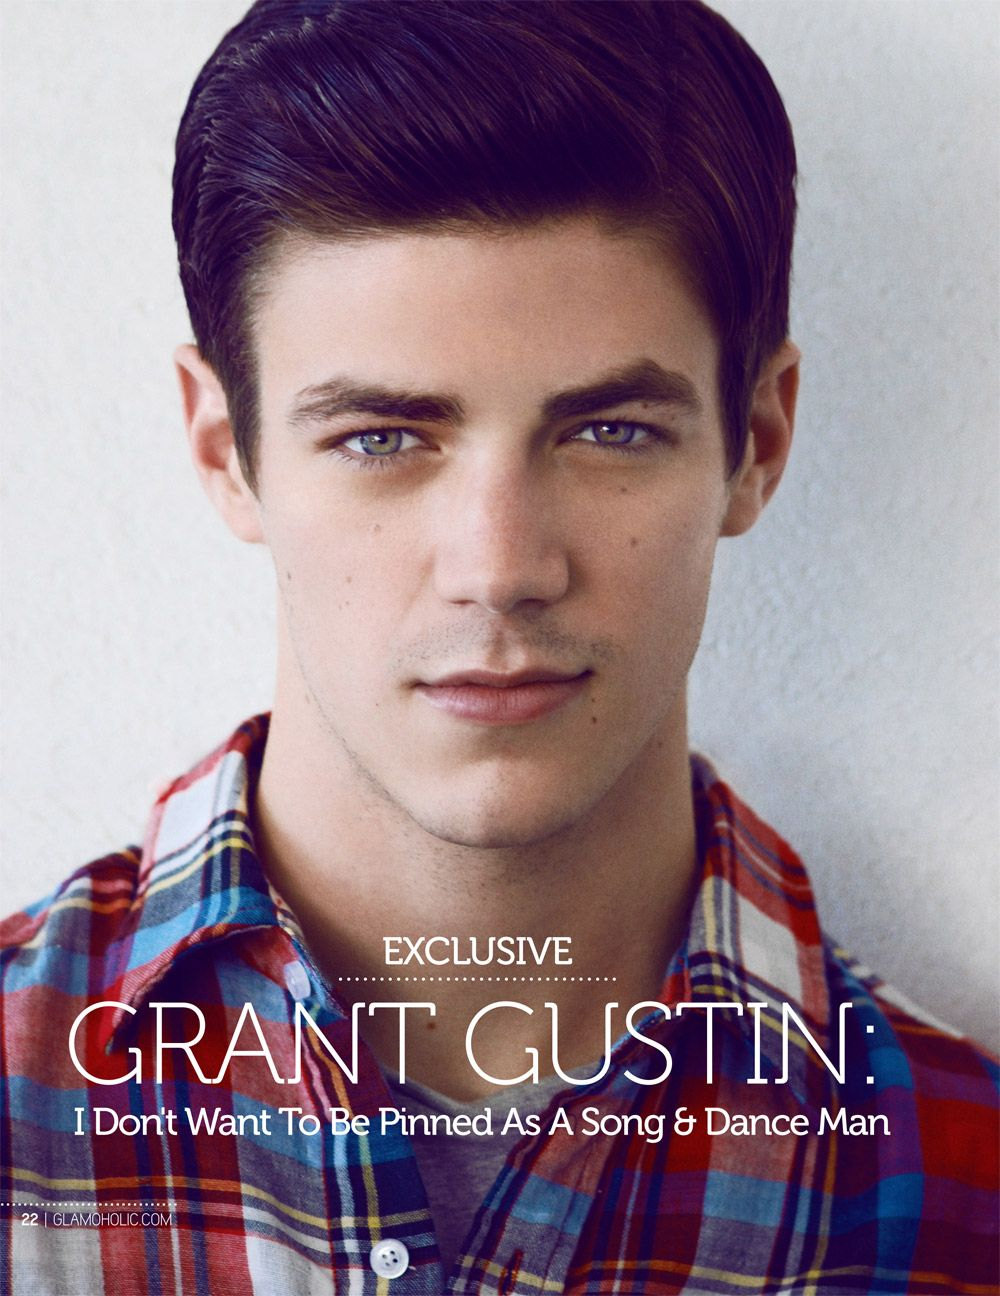 grant gustin filmsgrant gustin gif, grant gustin glee, grant gustin vk, grant gustin twitter, grant gustin tumblr, grant gustin песни, grant gustin singing, grant gustin insta, grant gustin height, grant gustin hq, grant gustin facebook, grant gustin gif hunt, grant gustin glad you came, grant gustin and danielle panabaker, grant gustin smooth criminal, grant gustin инстаграм, grant gustin wiki, grant gustin films, grant gustin running home перевод, grant gustin – running home to you lyrics